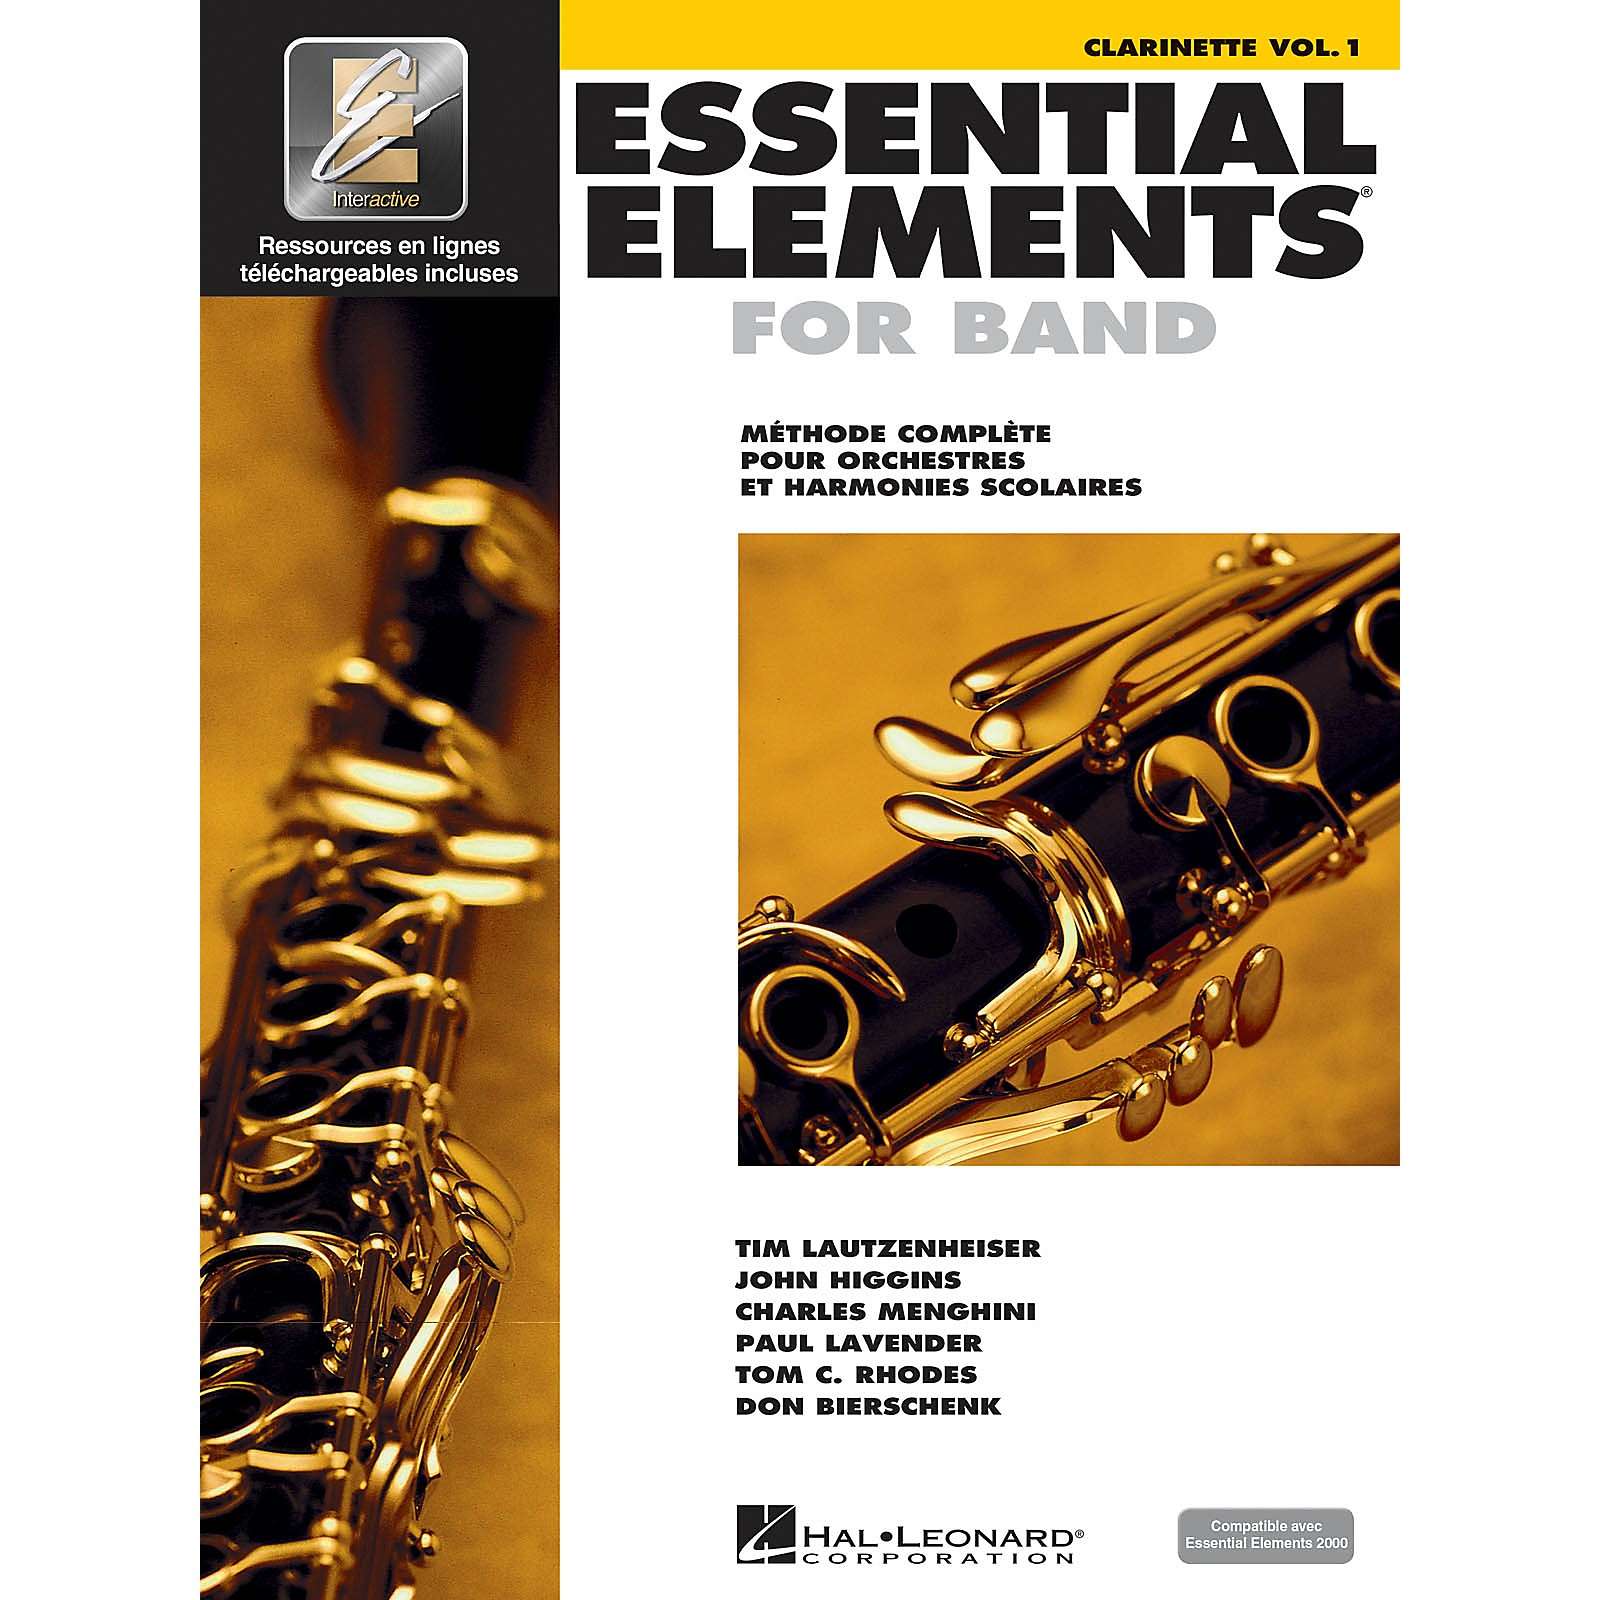 Hal Leonard Essential Elements French Edition EE2000 Clarinet B-flat Essential Elements for Band Series Softcover Media Online